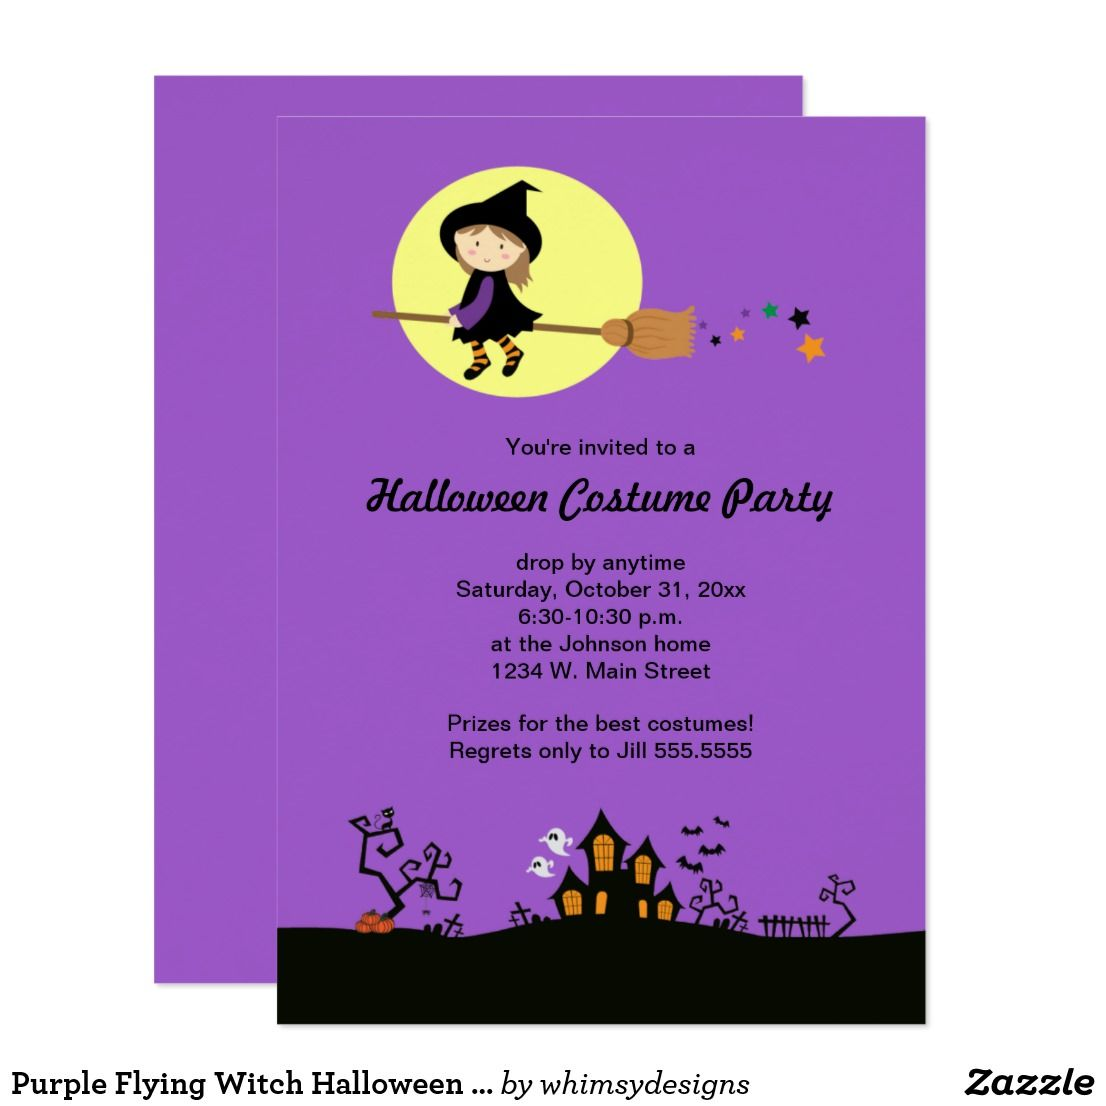 Purple Flying Witch Halloween Party Invitations | Halloween parties ...